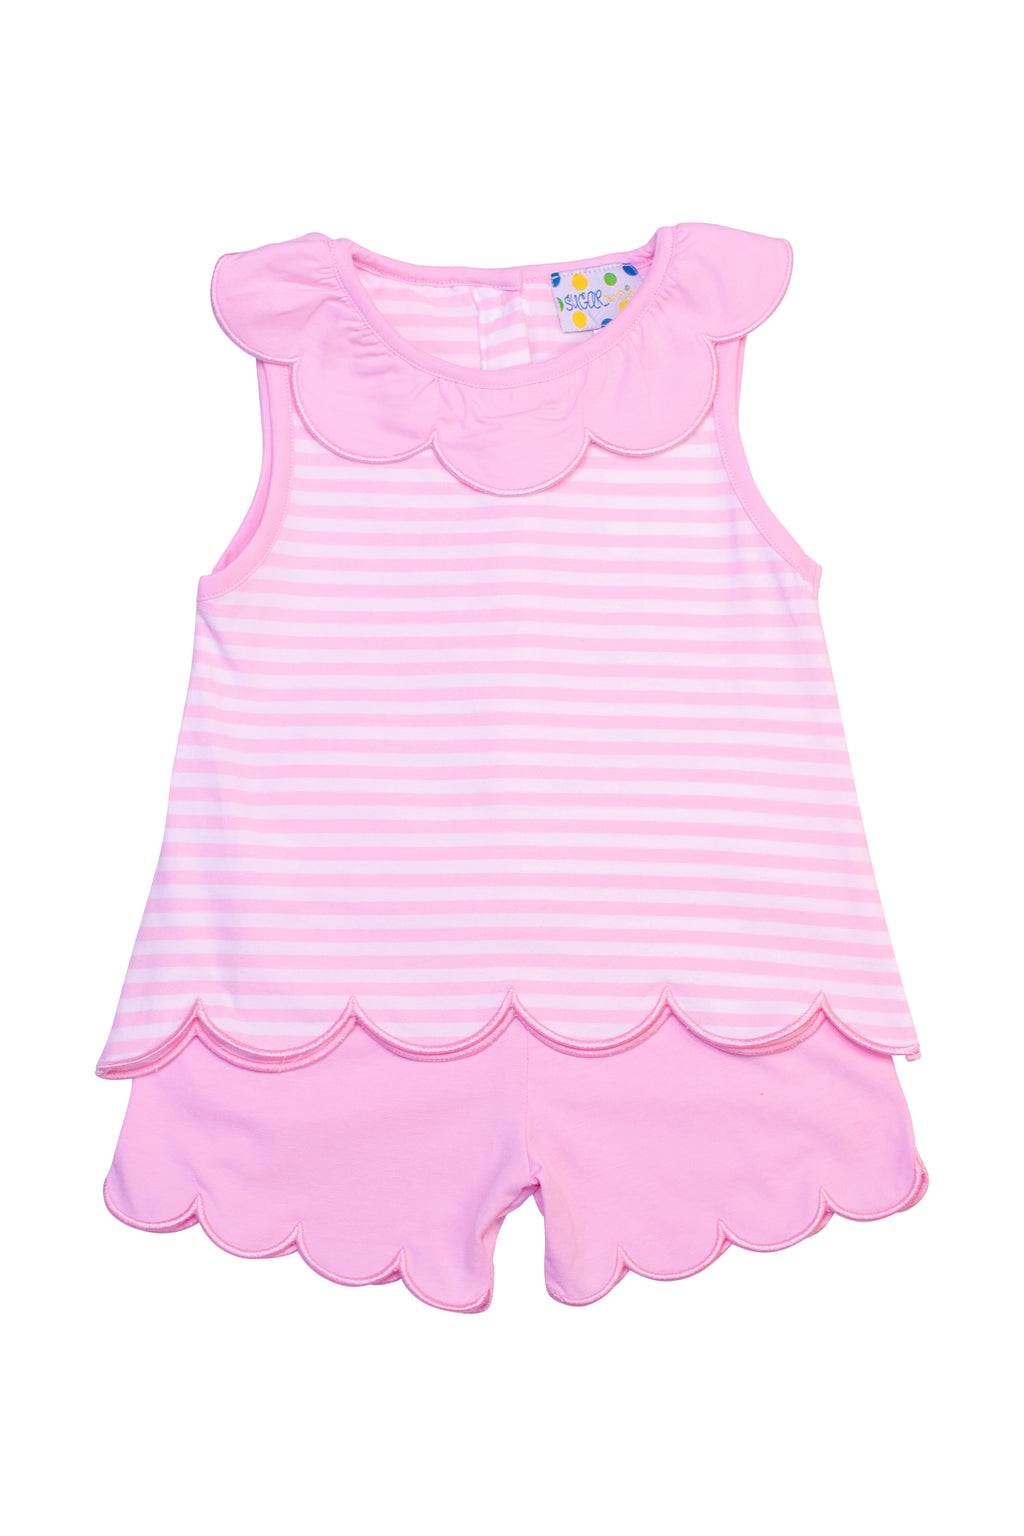 Girls Knit Pink Stripe Scalloped Short Set